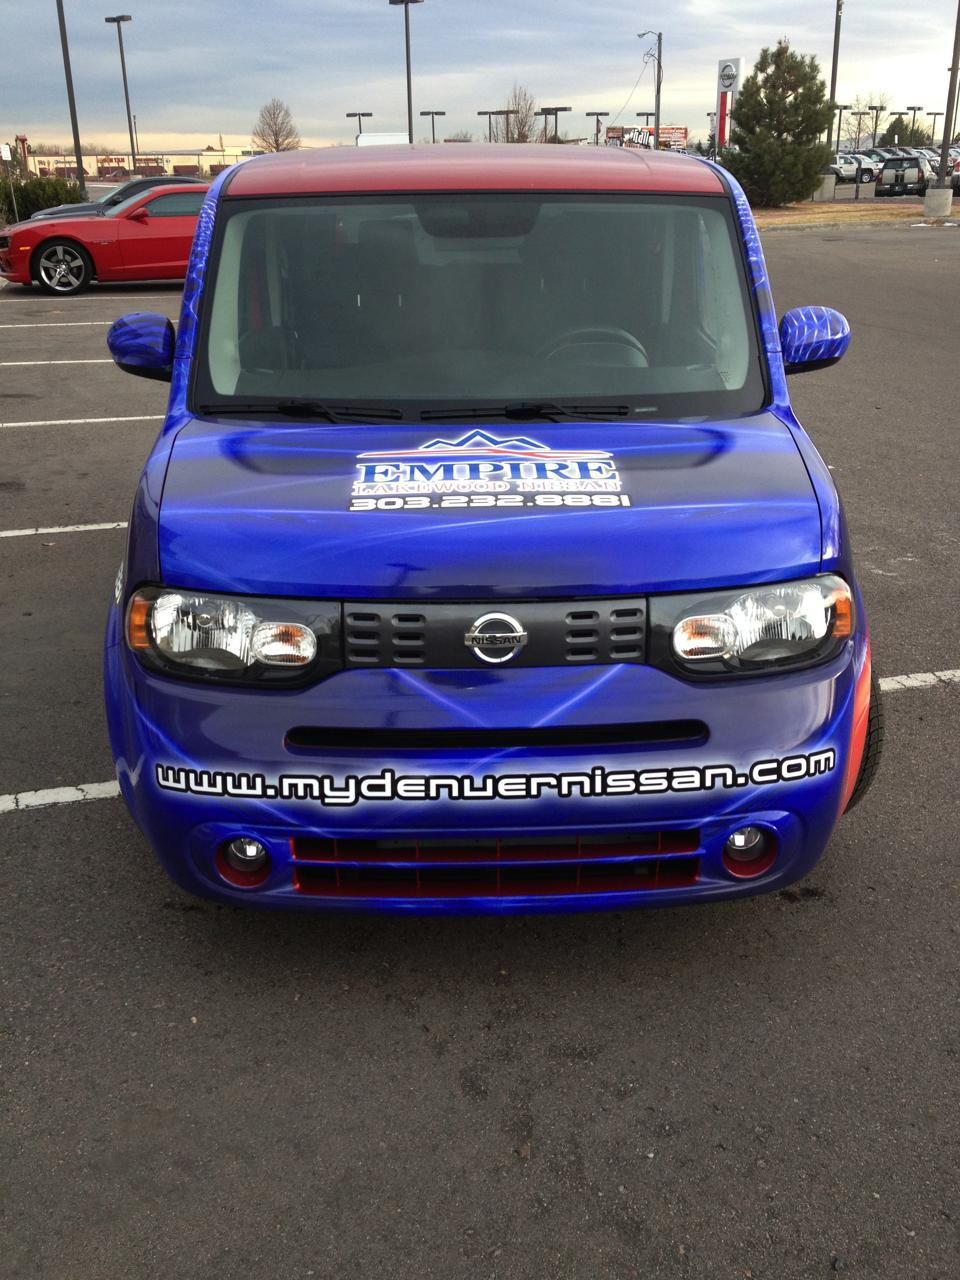 blue and silver Nissan wrap front